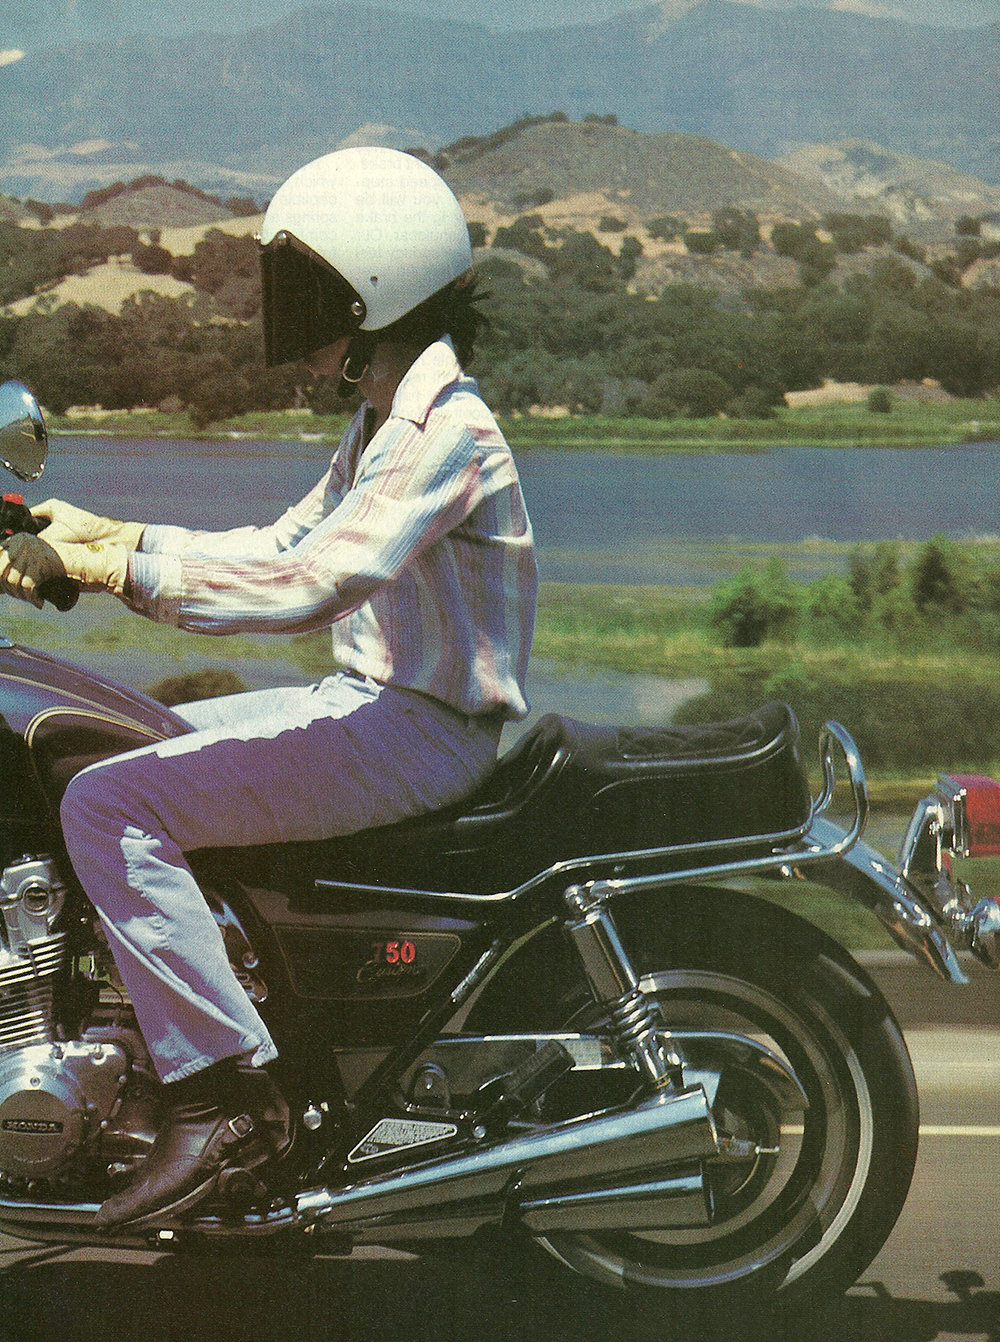 1980 Honda CB750C road test 02.jpg